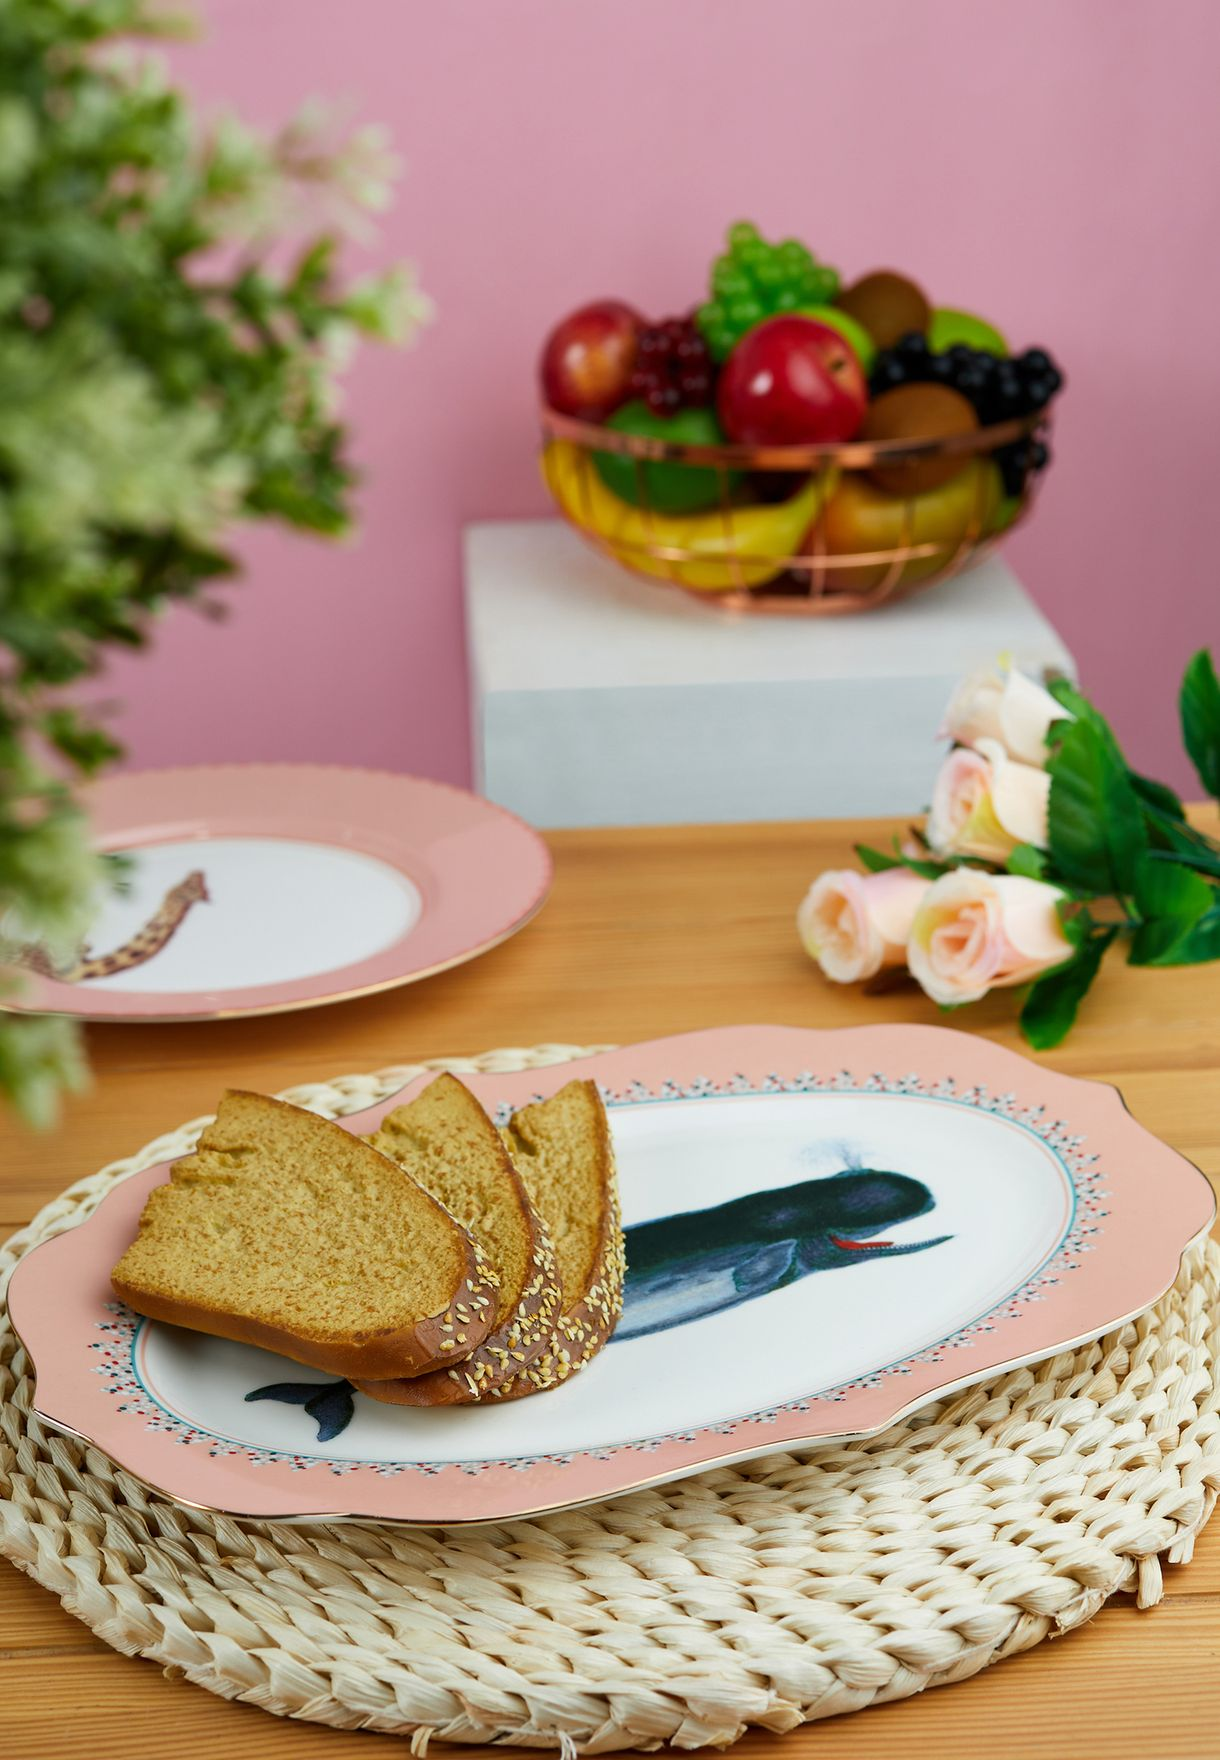 Platter Serving Plate Whale